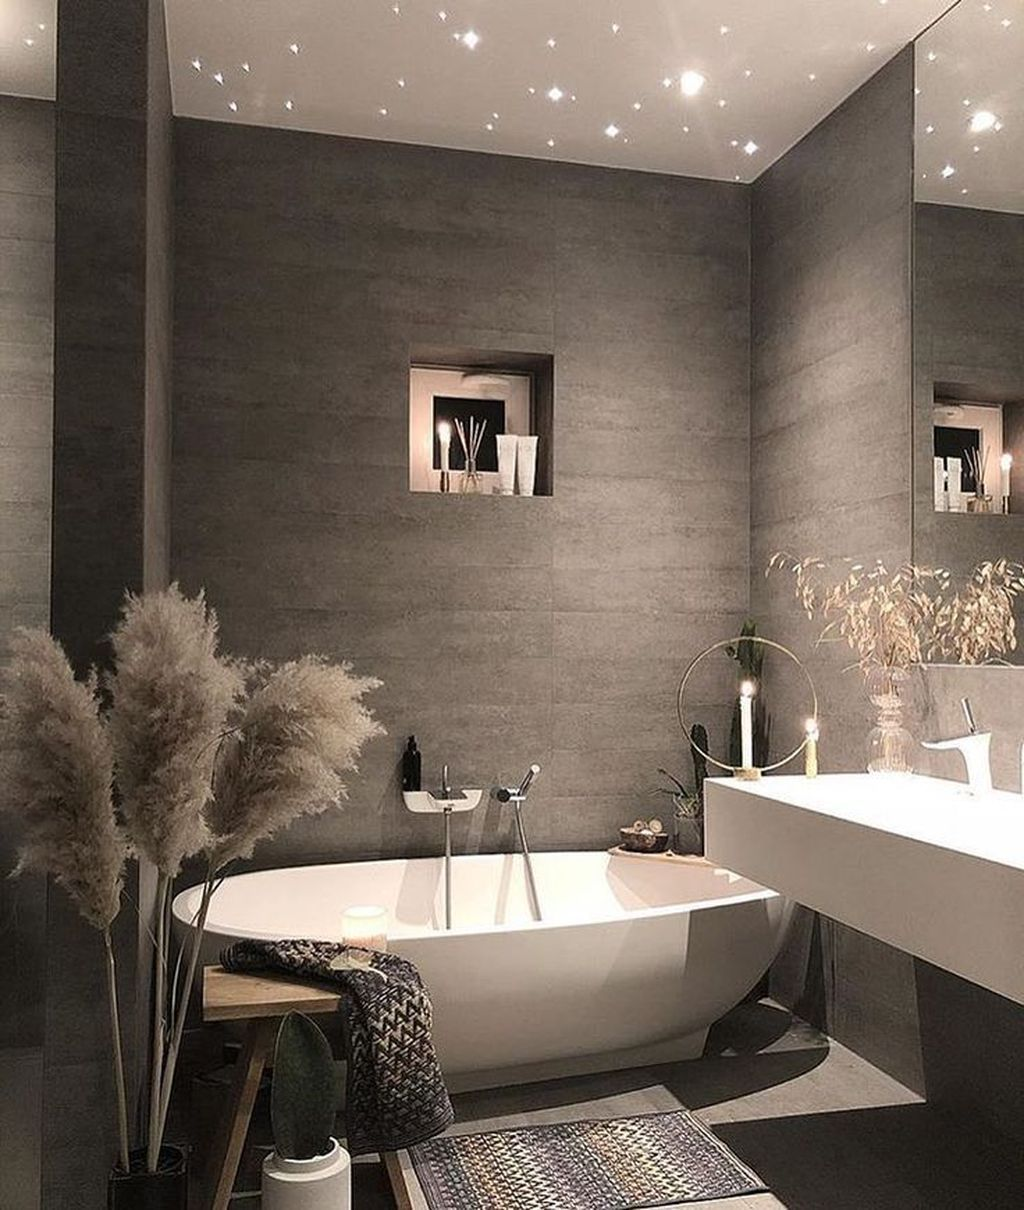 34 Stunning Bathroom Decoration Ideas Trends 2020 Home Interior Design Bathroom Interior Design House Interior